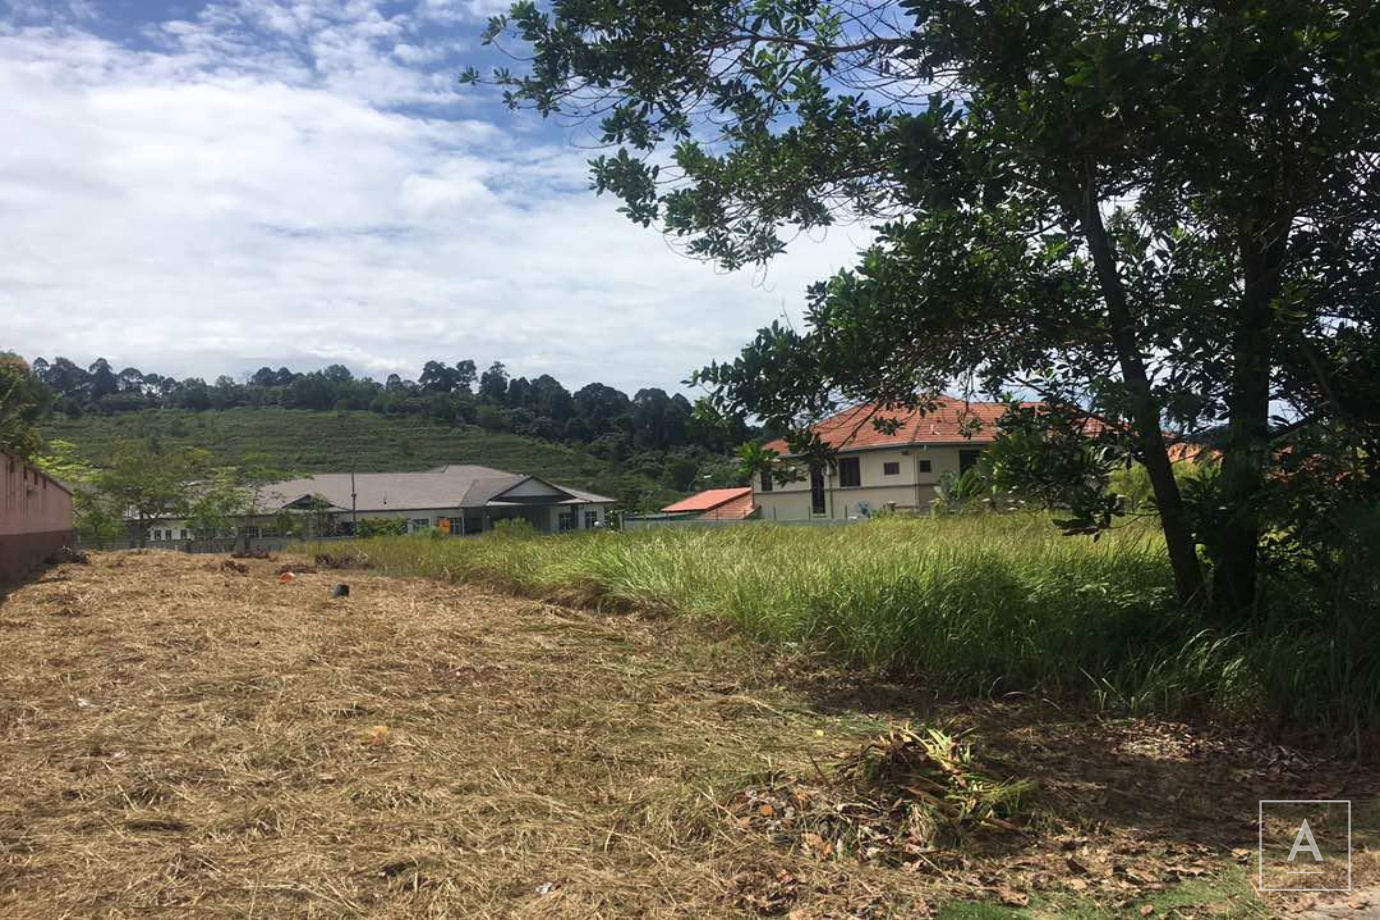 Perdana Heights, Shah Alam,Selangor, ,Vacant Land,For Sale,Perdana Heights,1862